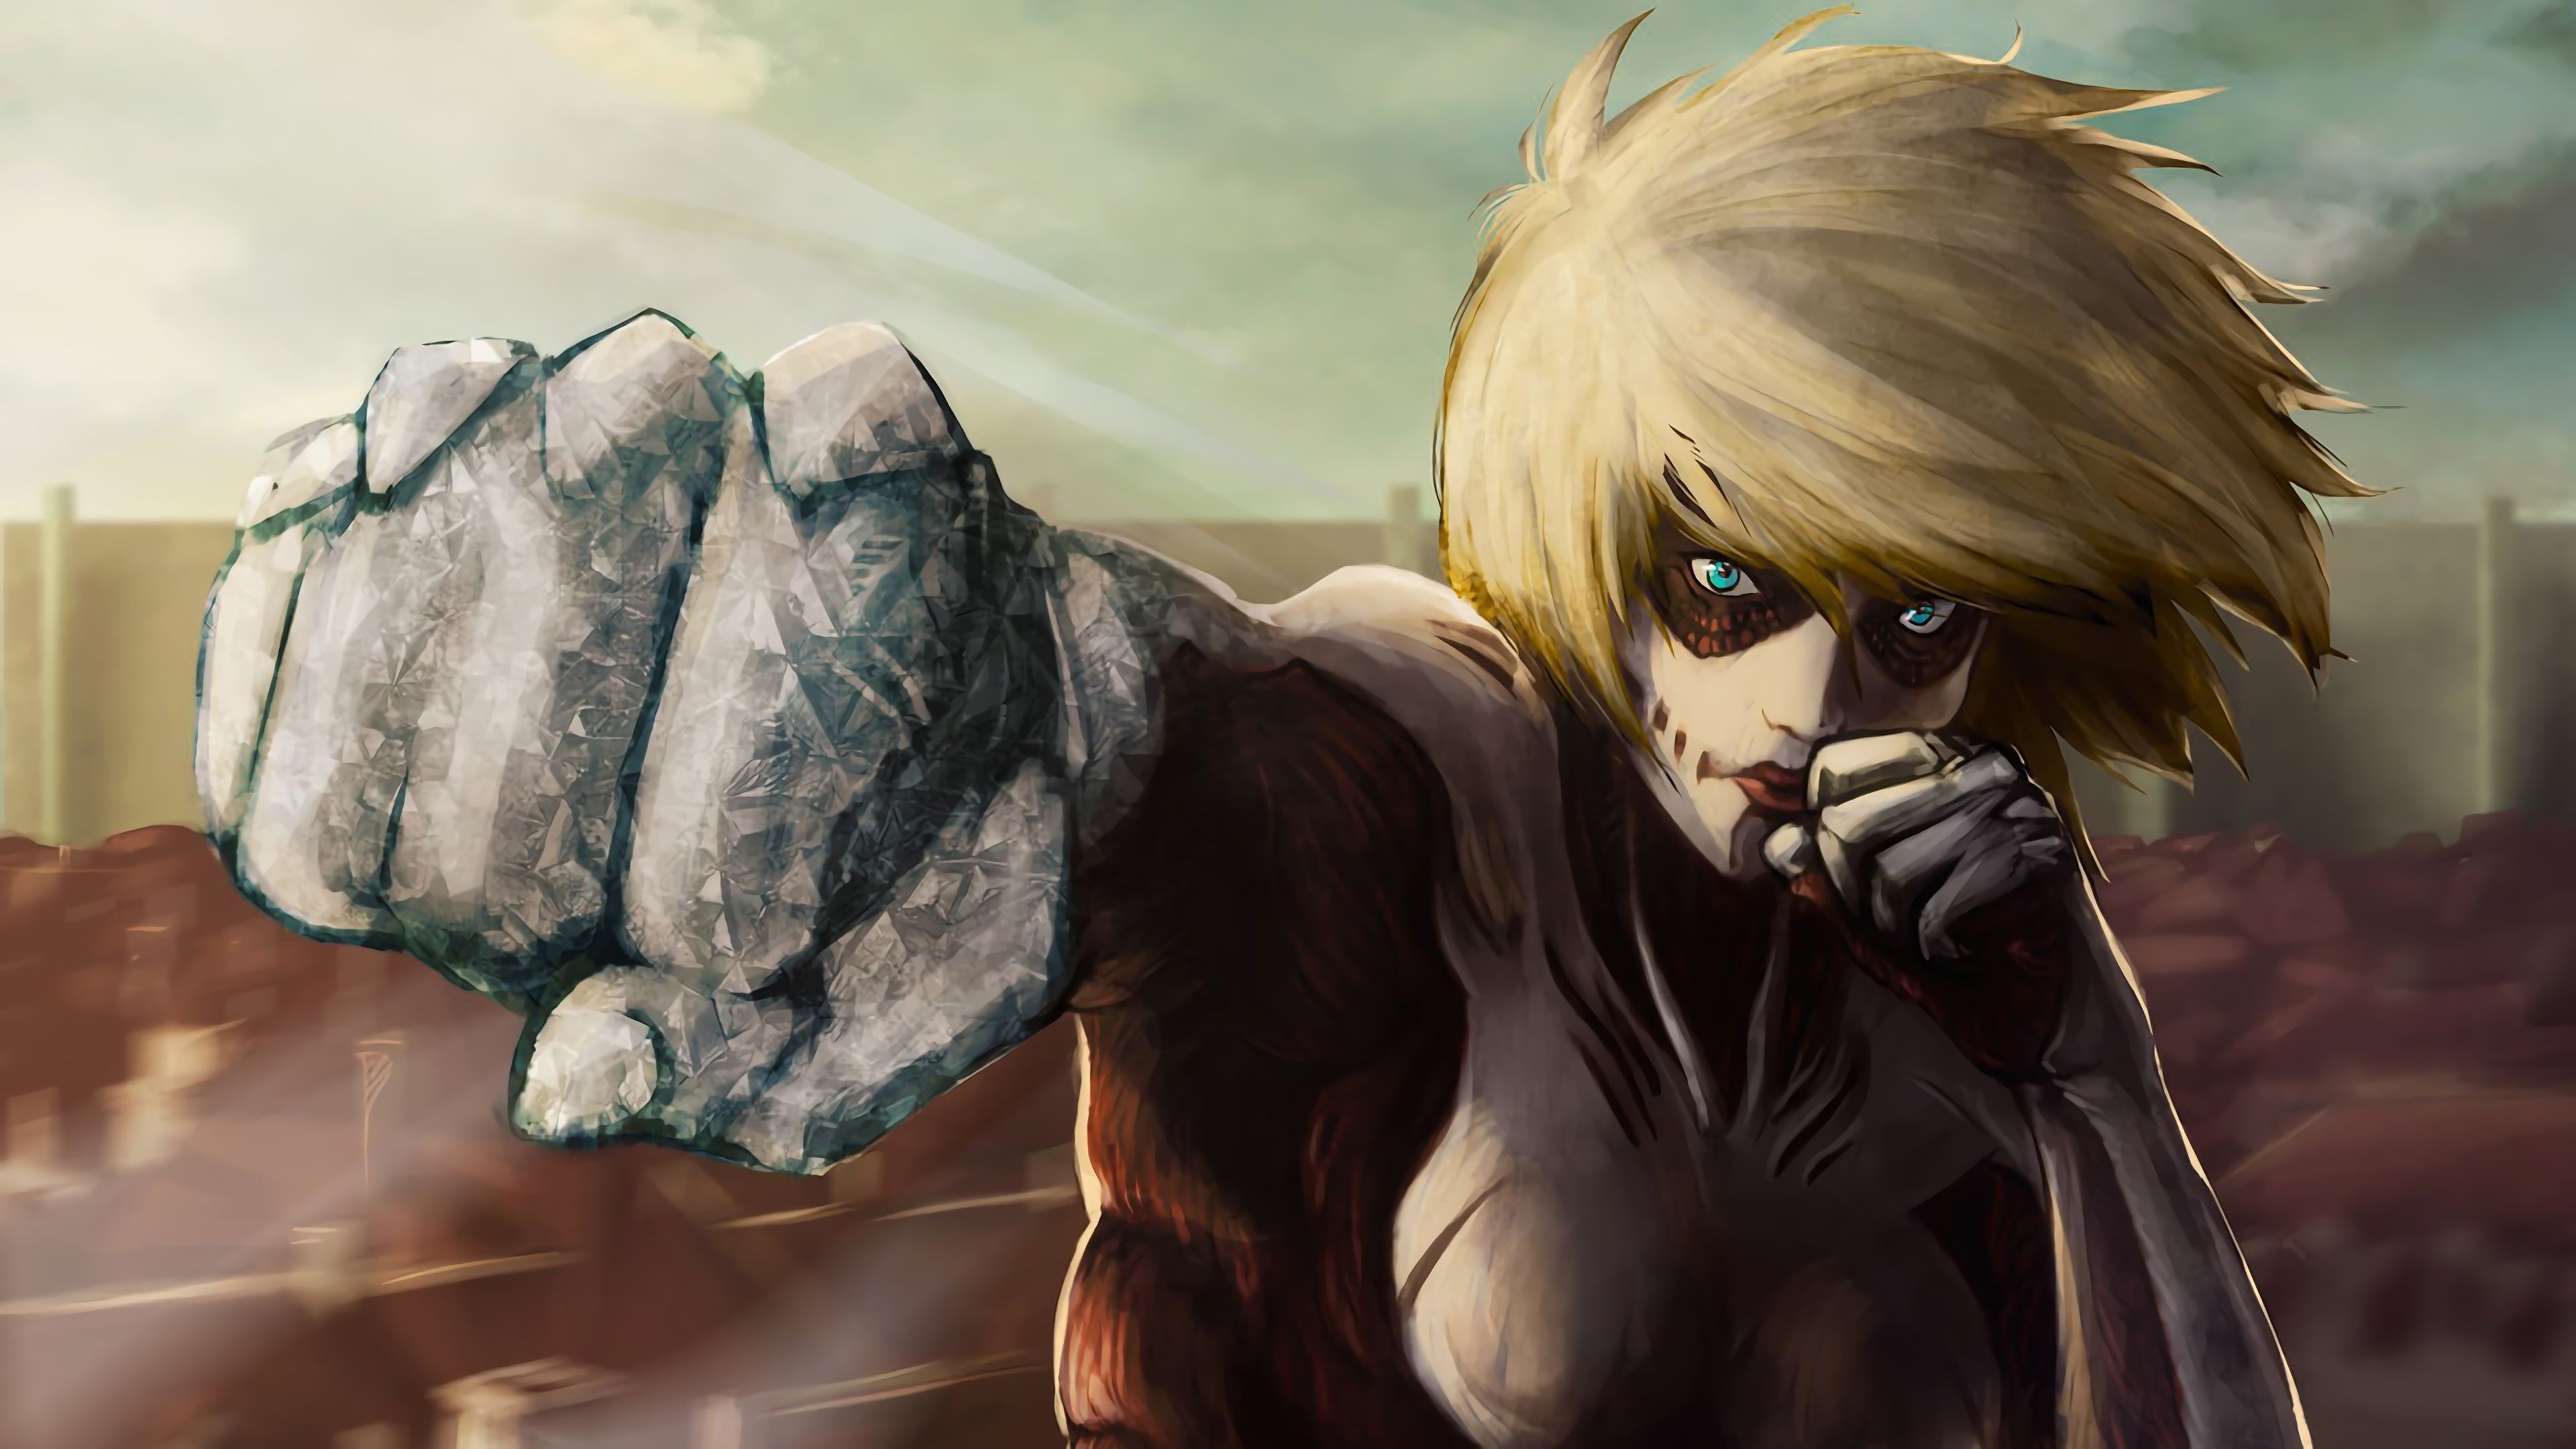 Female Titan Wallpapers Top Free Female Titan Backgrounds Wallpaperaccess